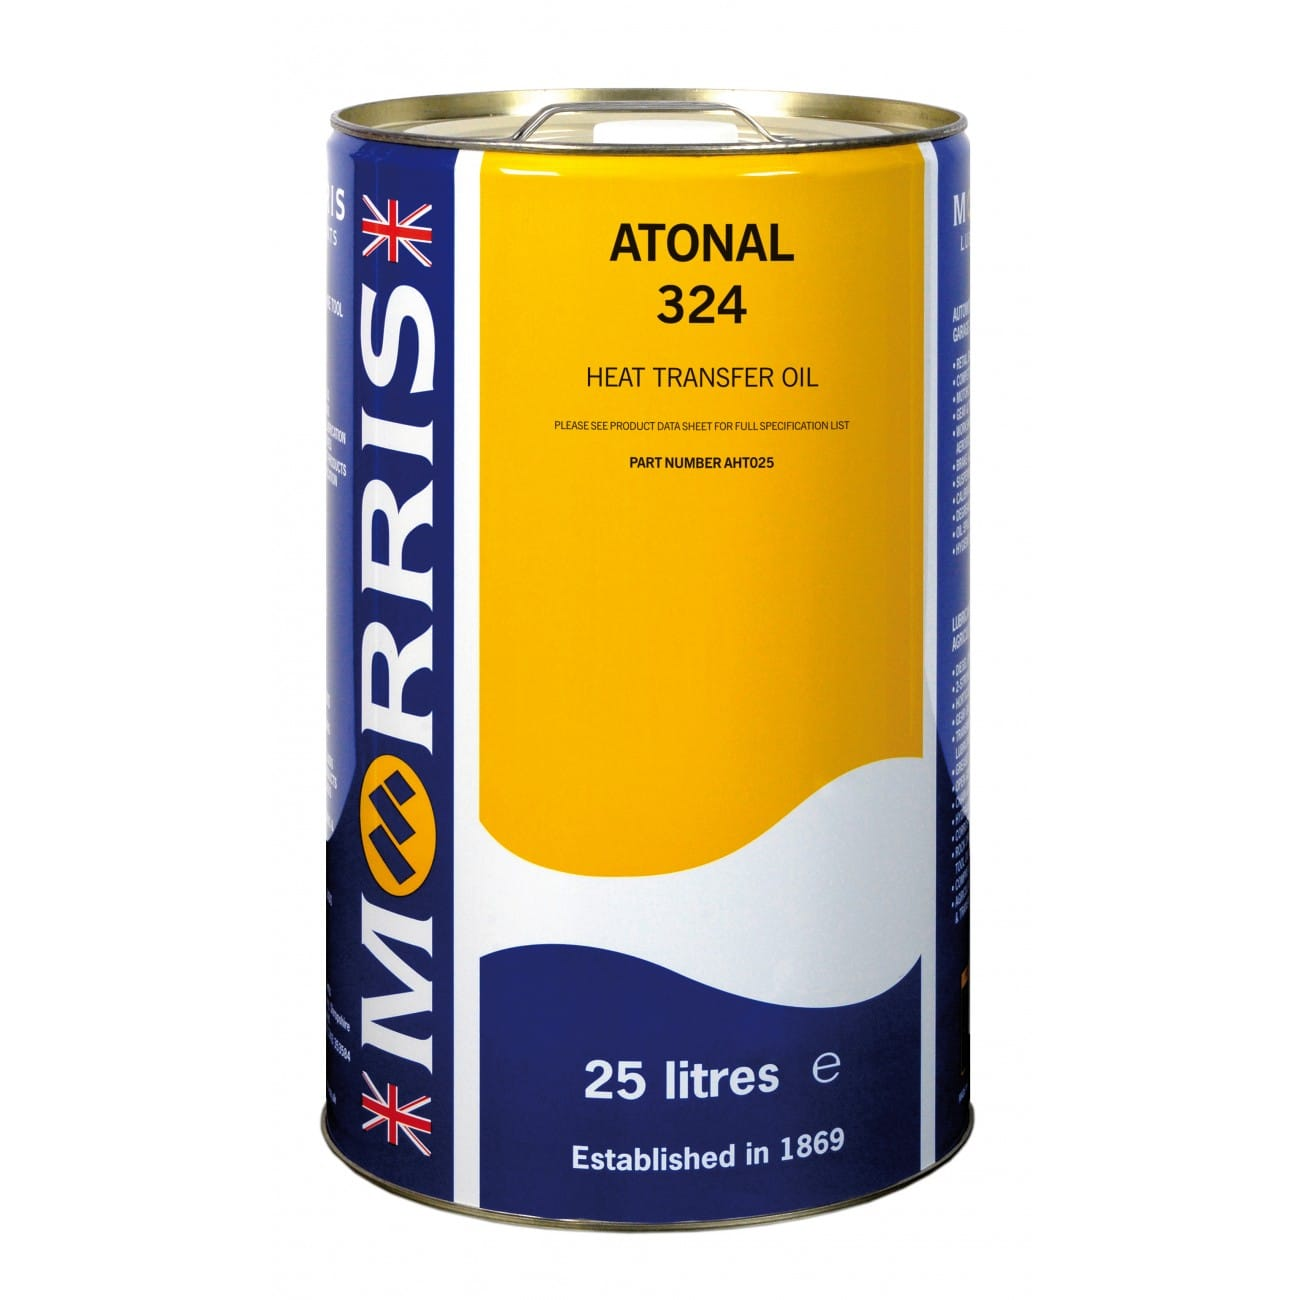 Atonal 324 Heat Transfer Oil